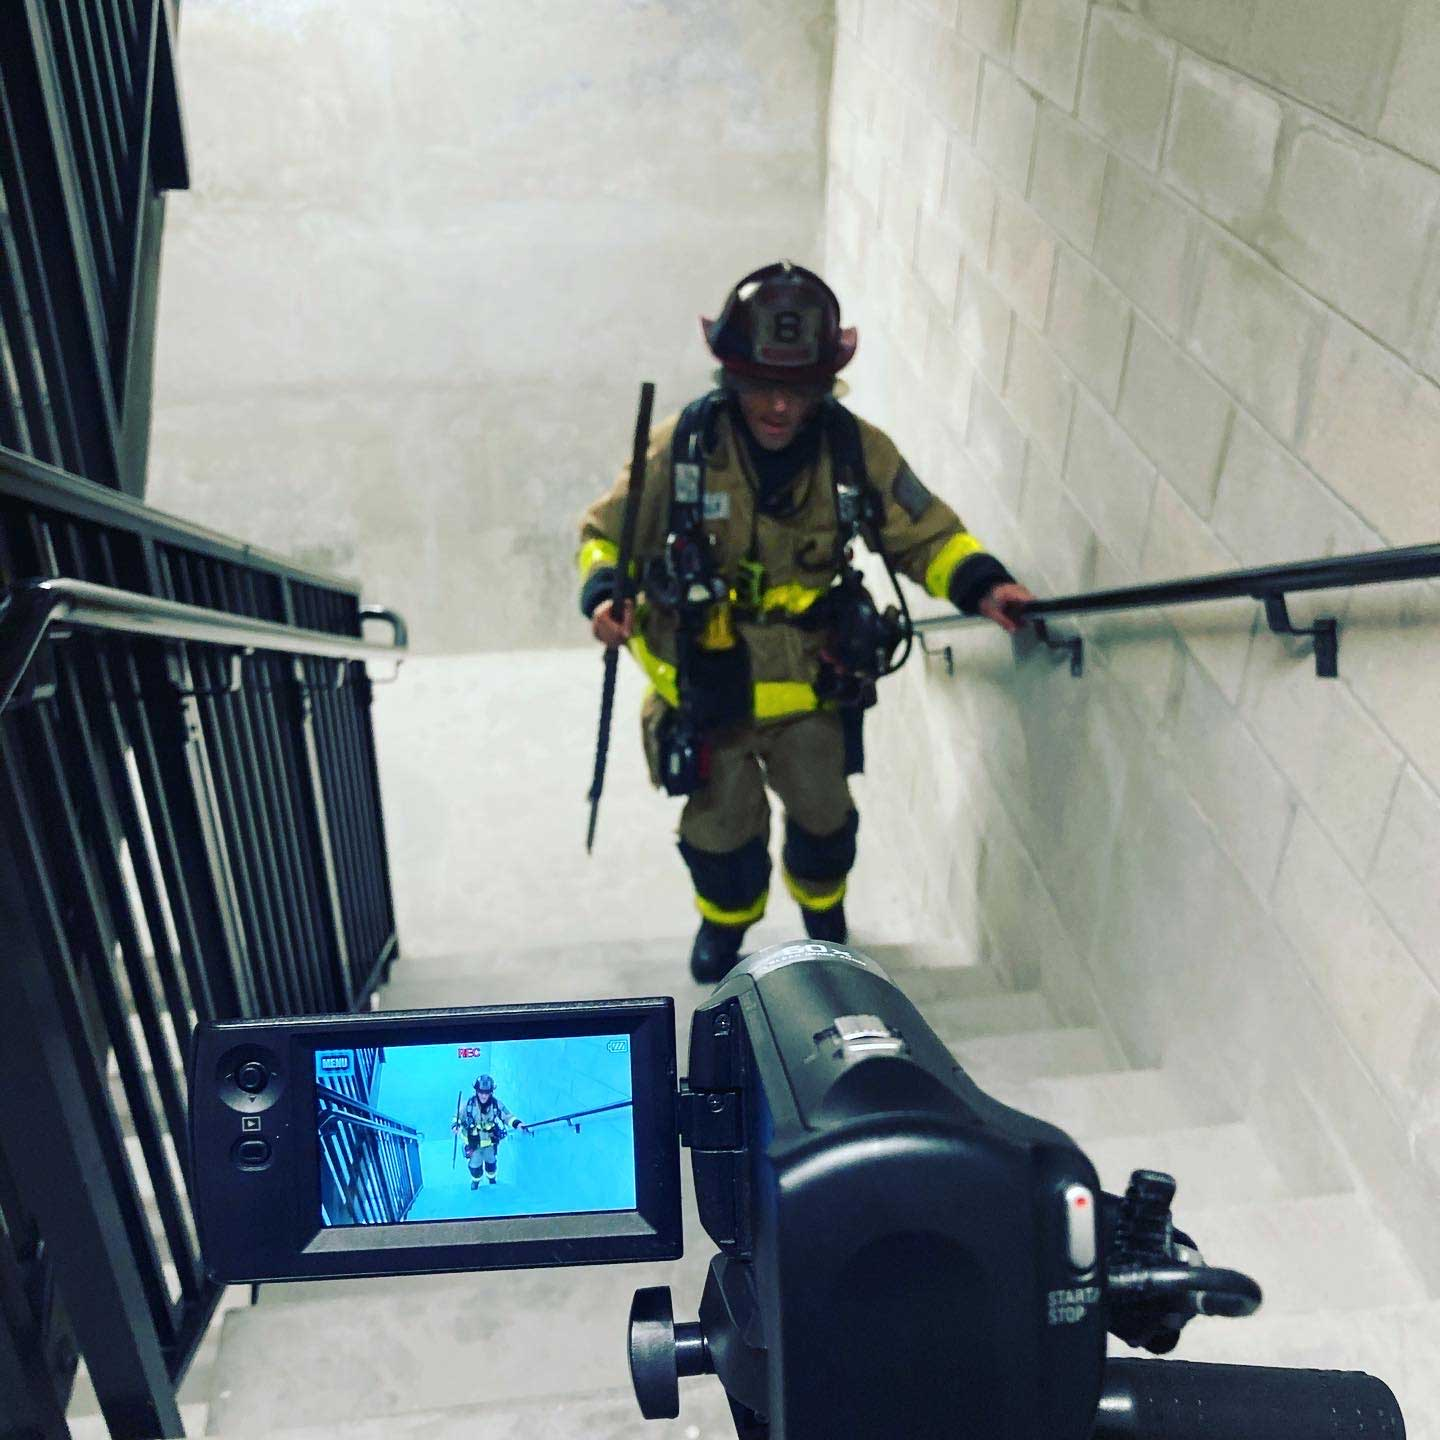 Filming a firefighter on the stairs